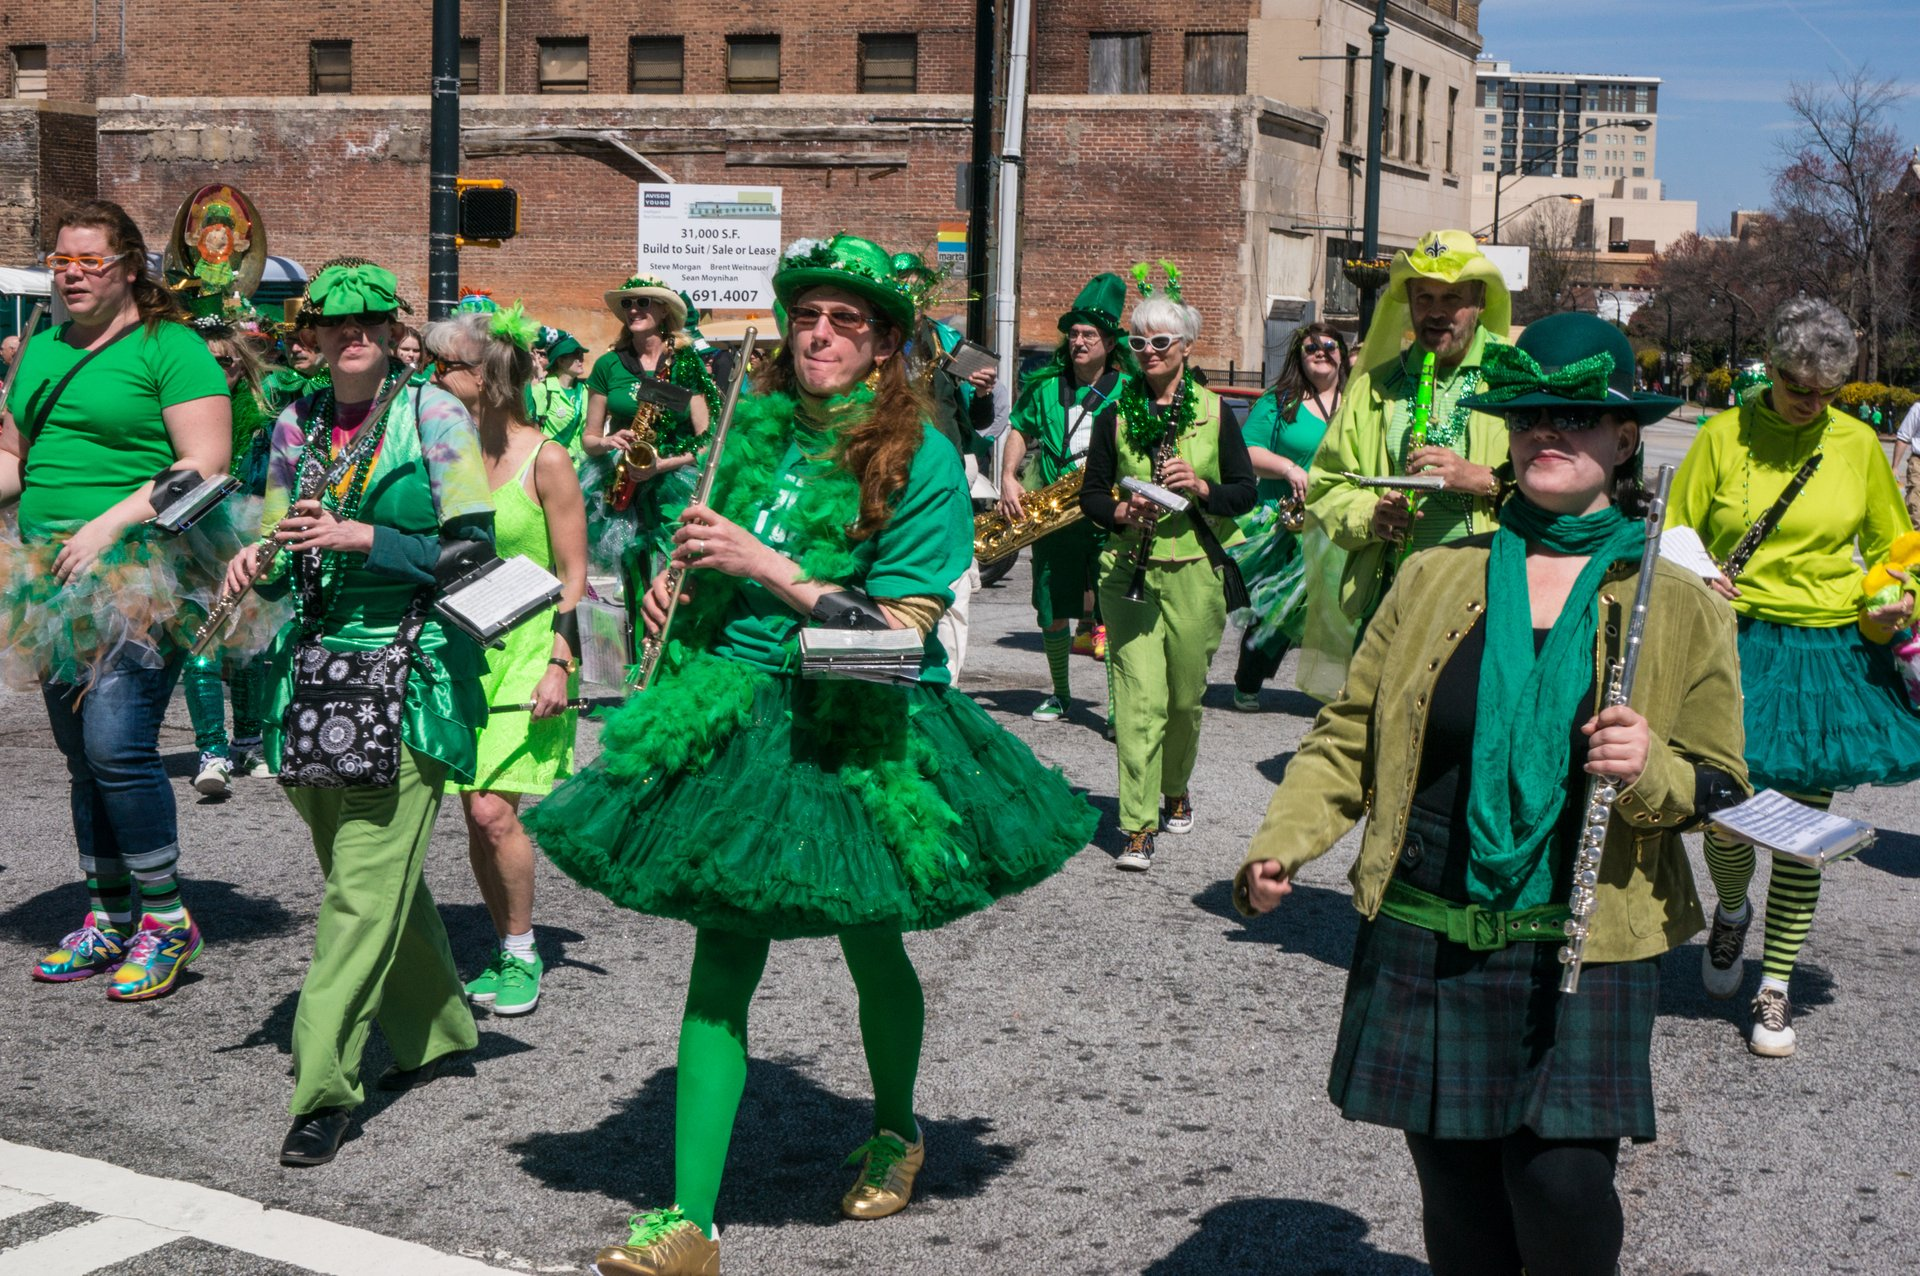 Best time for Atlanta St. Patrick's Parade in Atlanta 2020